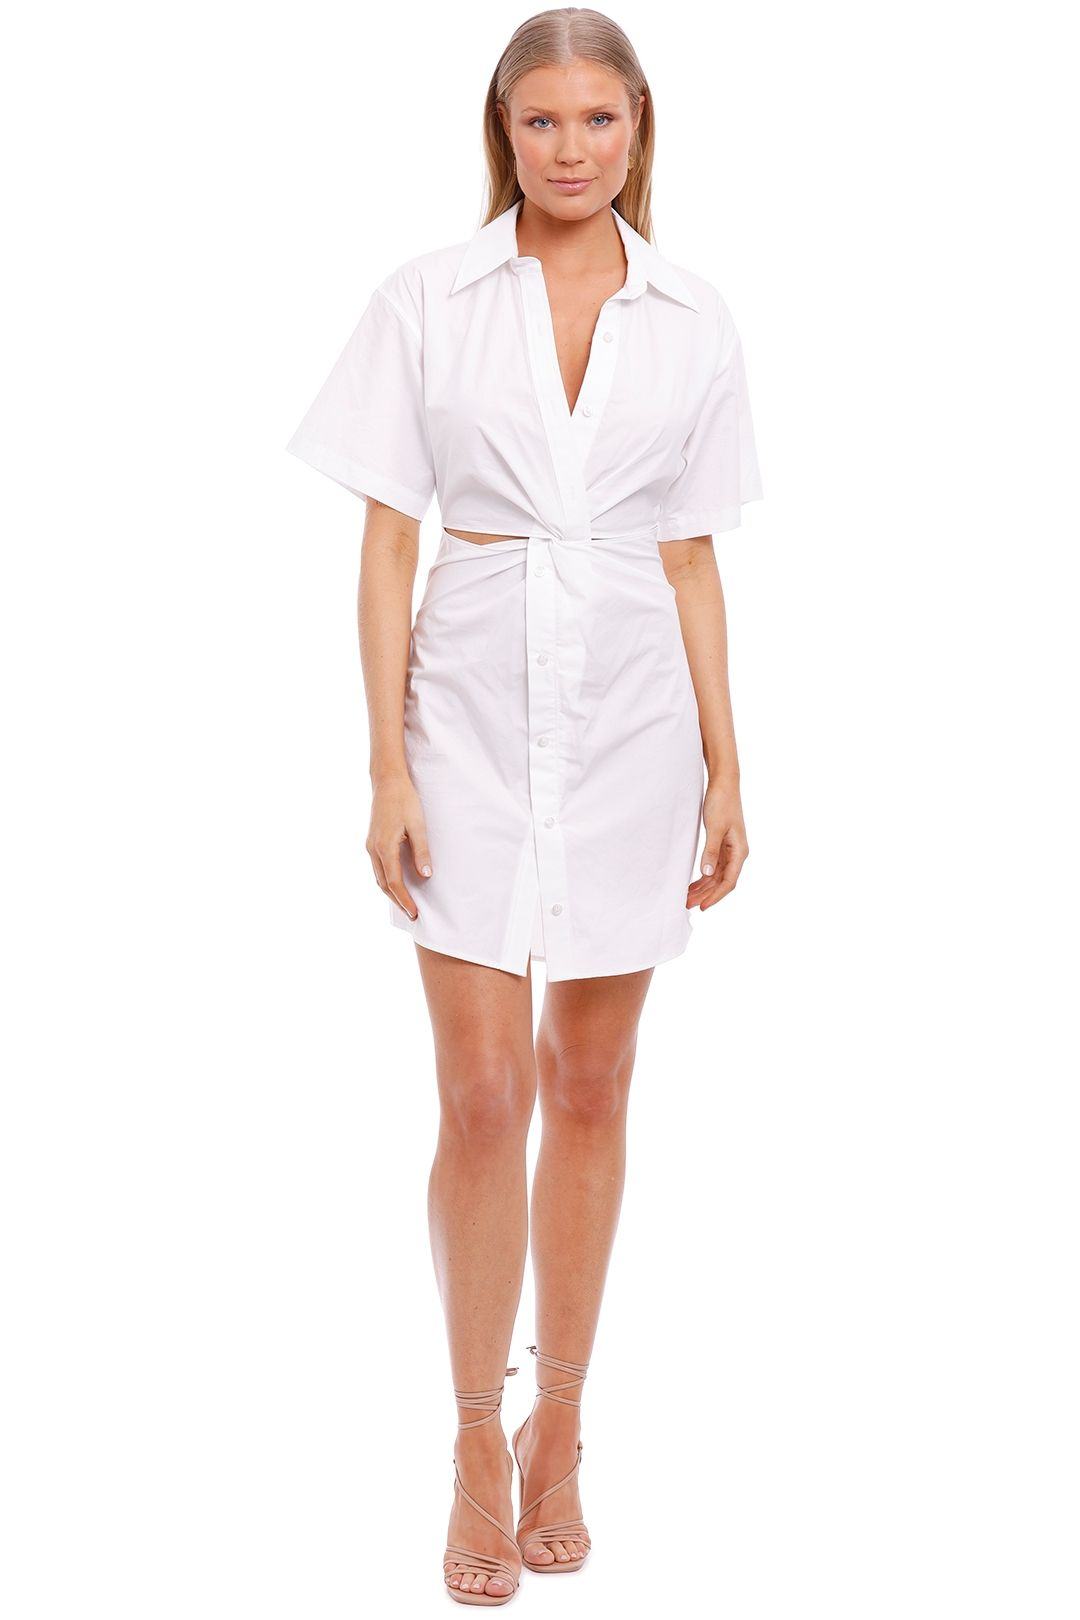 T by Alexander Wang Poplin Shirt Dress with Twist White cuout